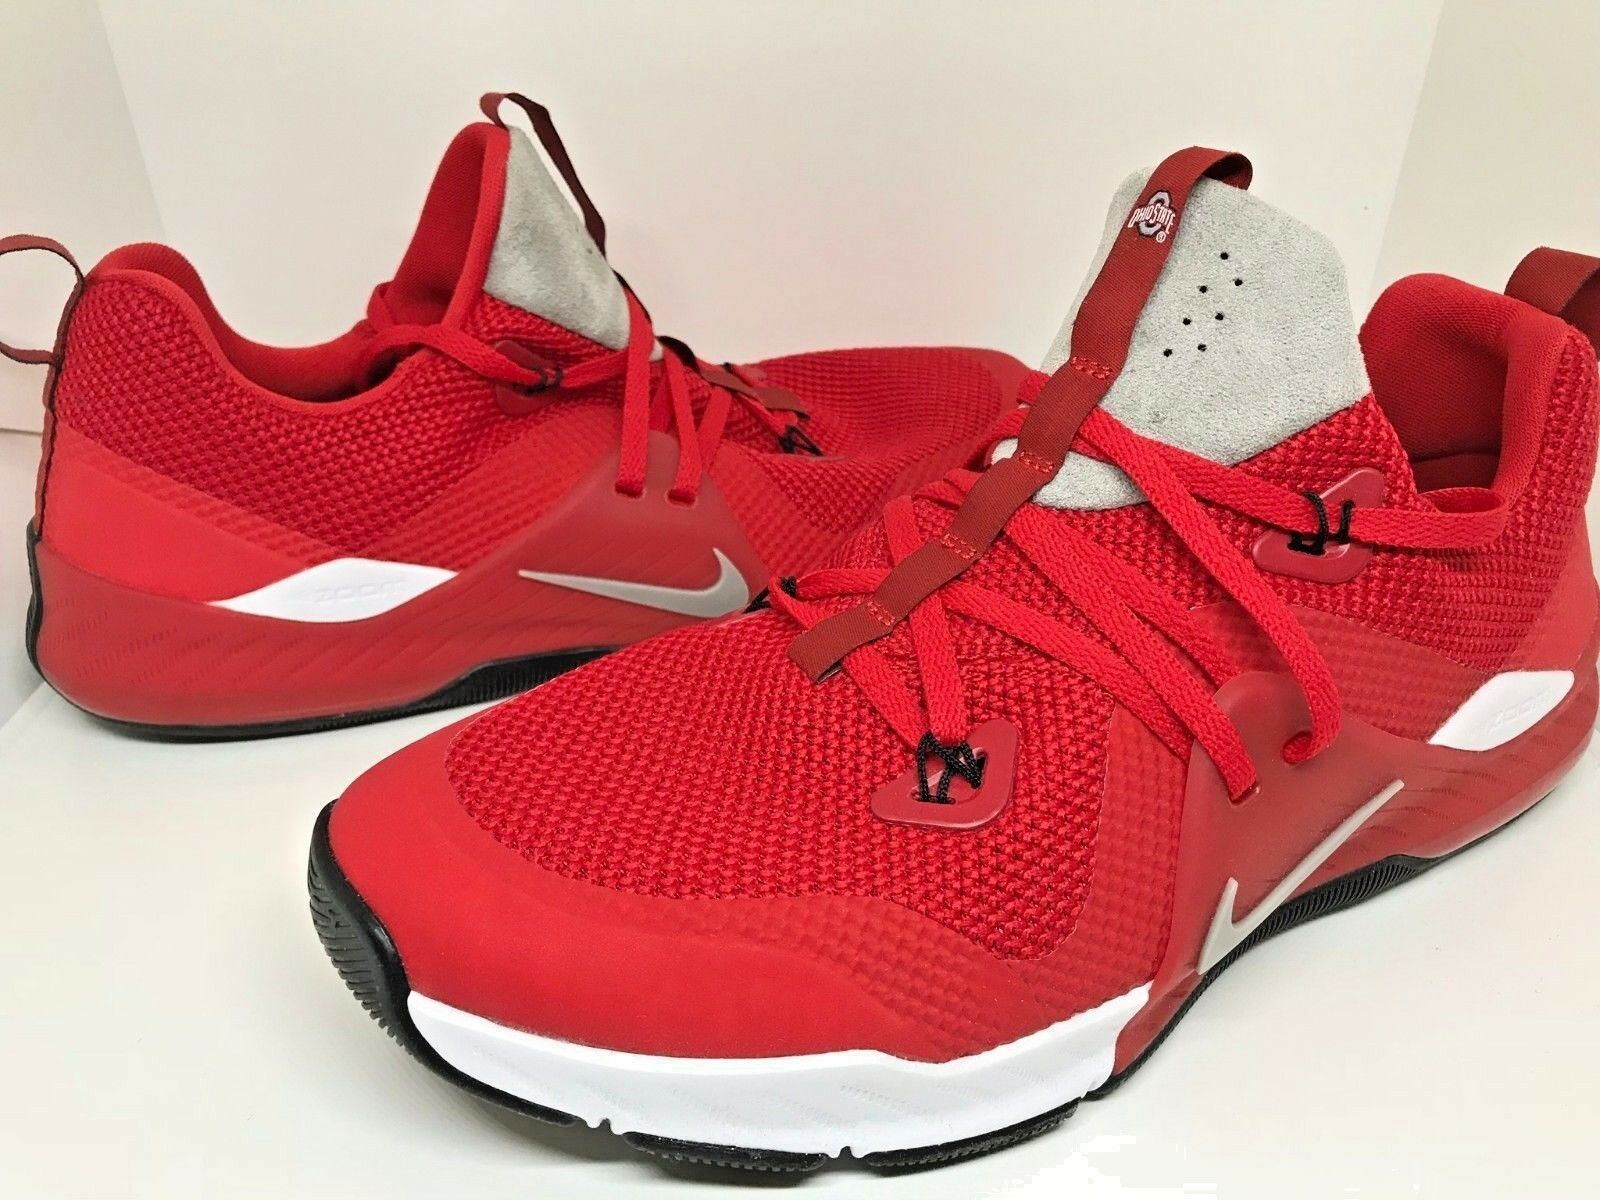 120 NEW Nike Mens Ohio State Buckeyes Zoom Train Command shoes Size 9.5 10.5